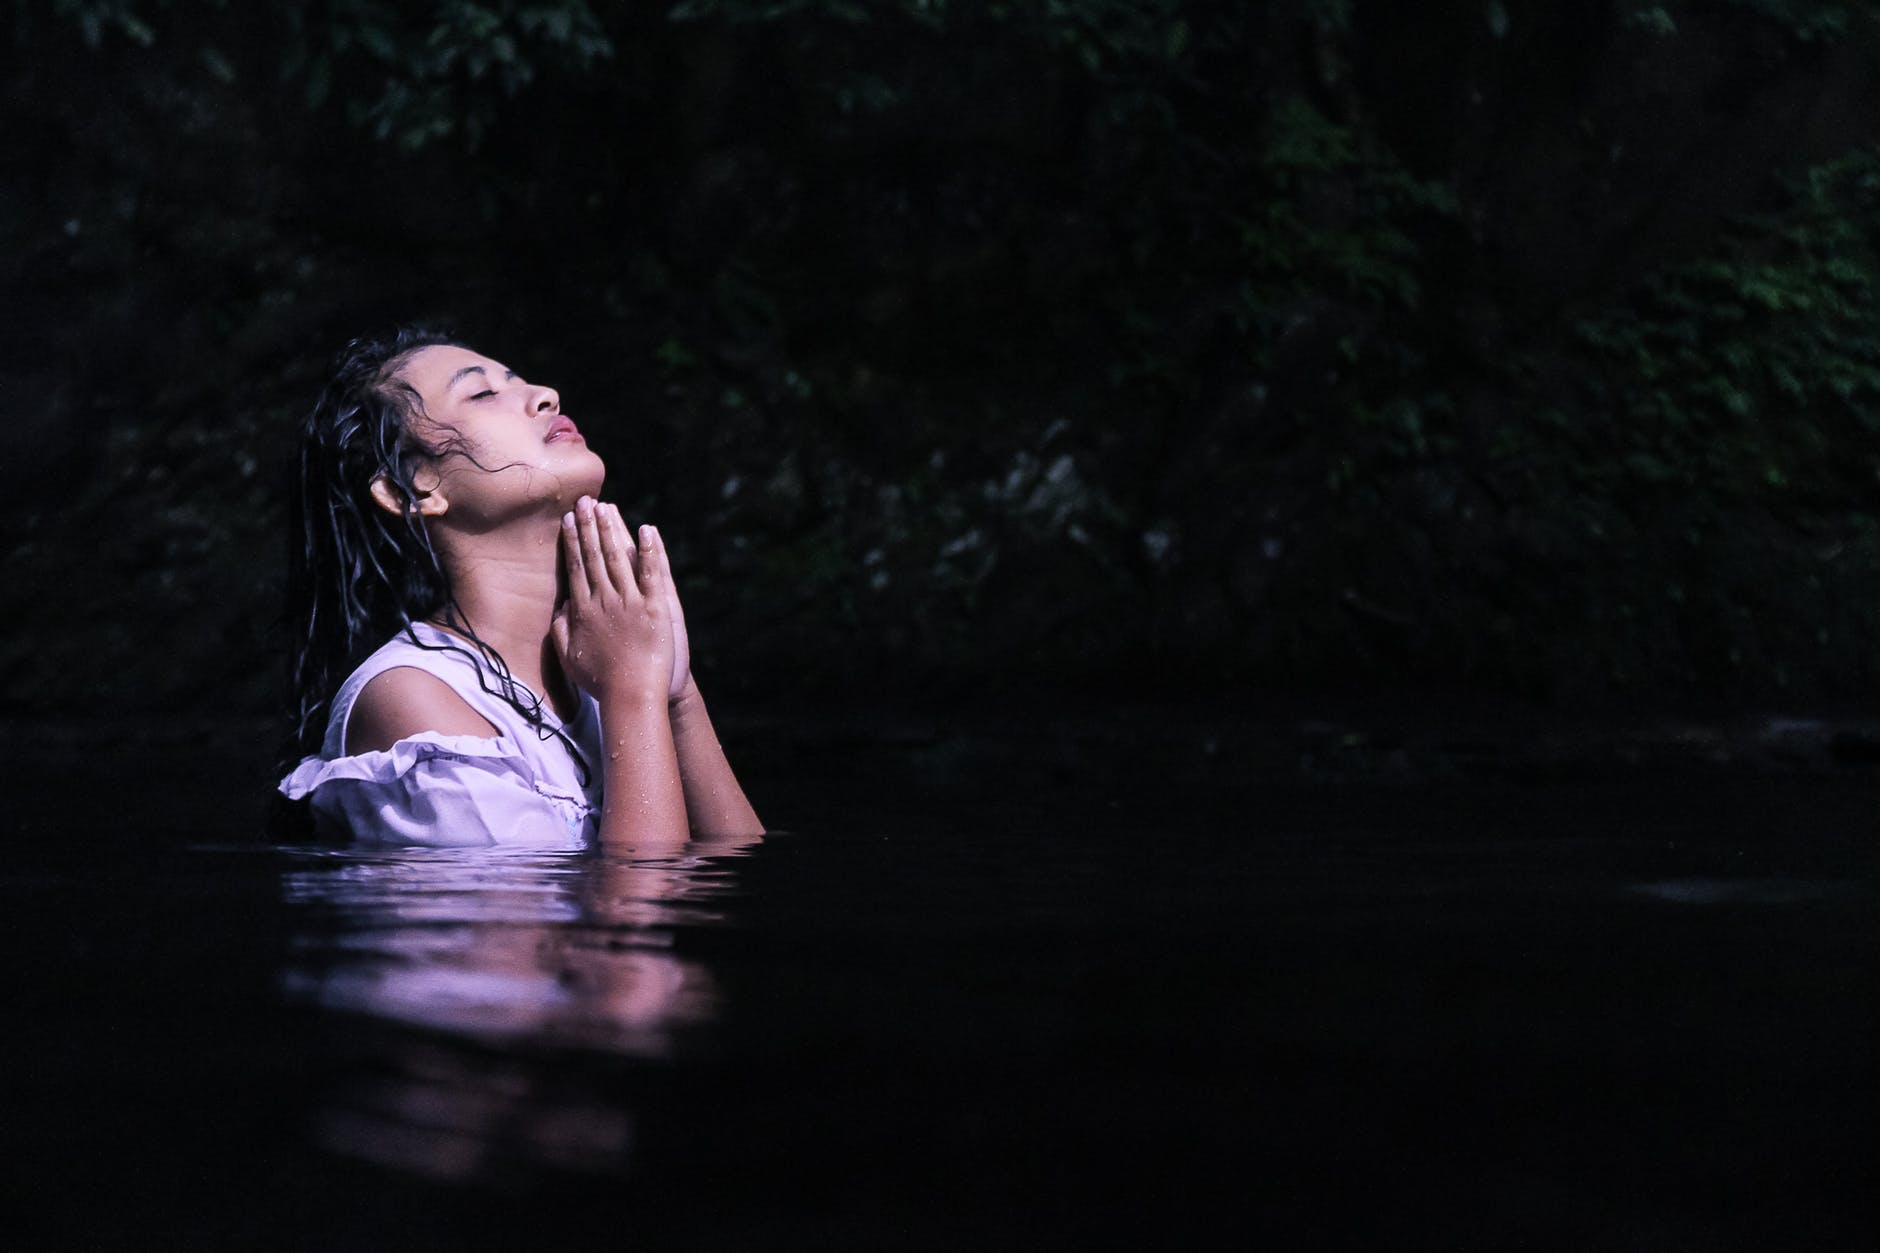 photography of a woman on water